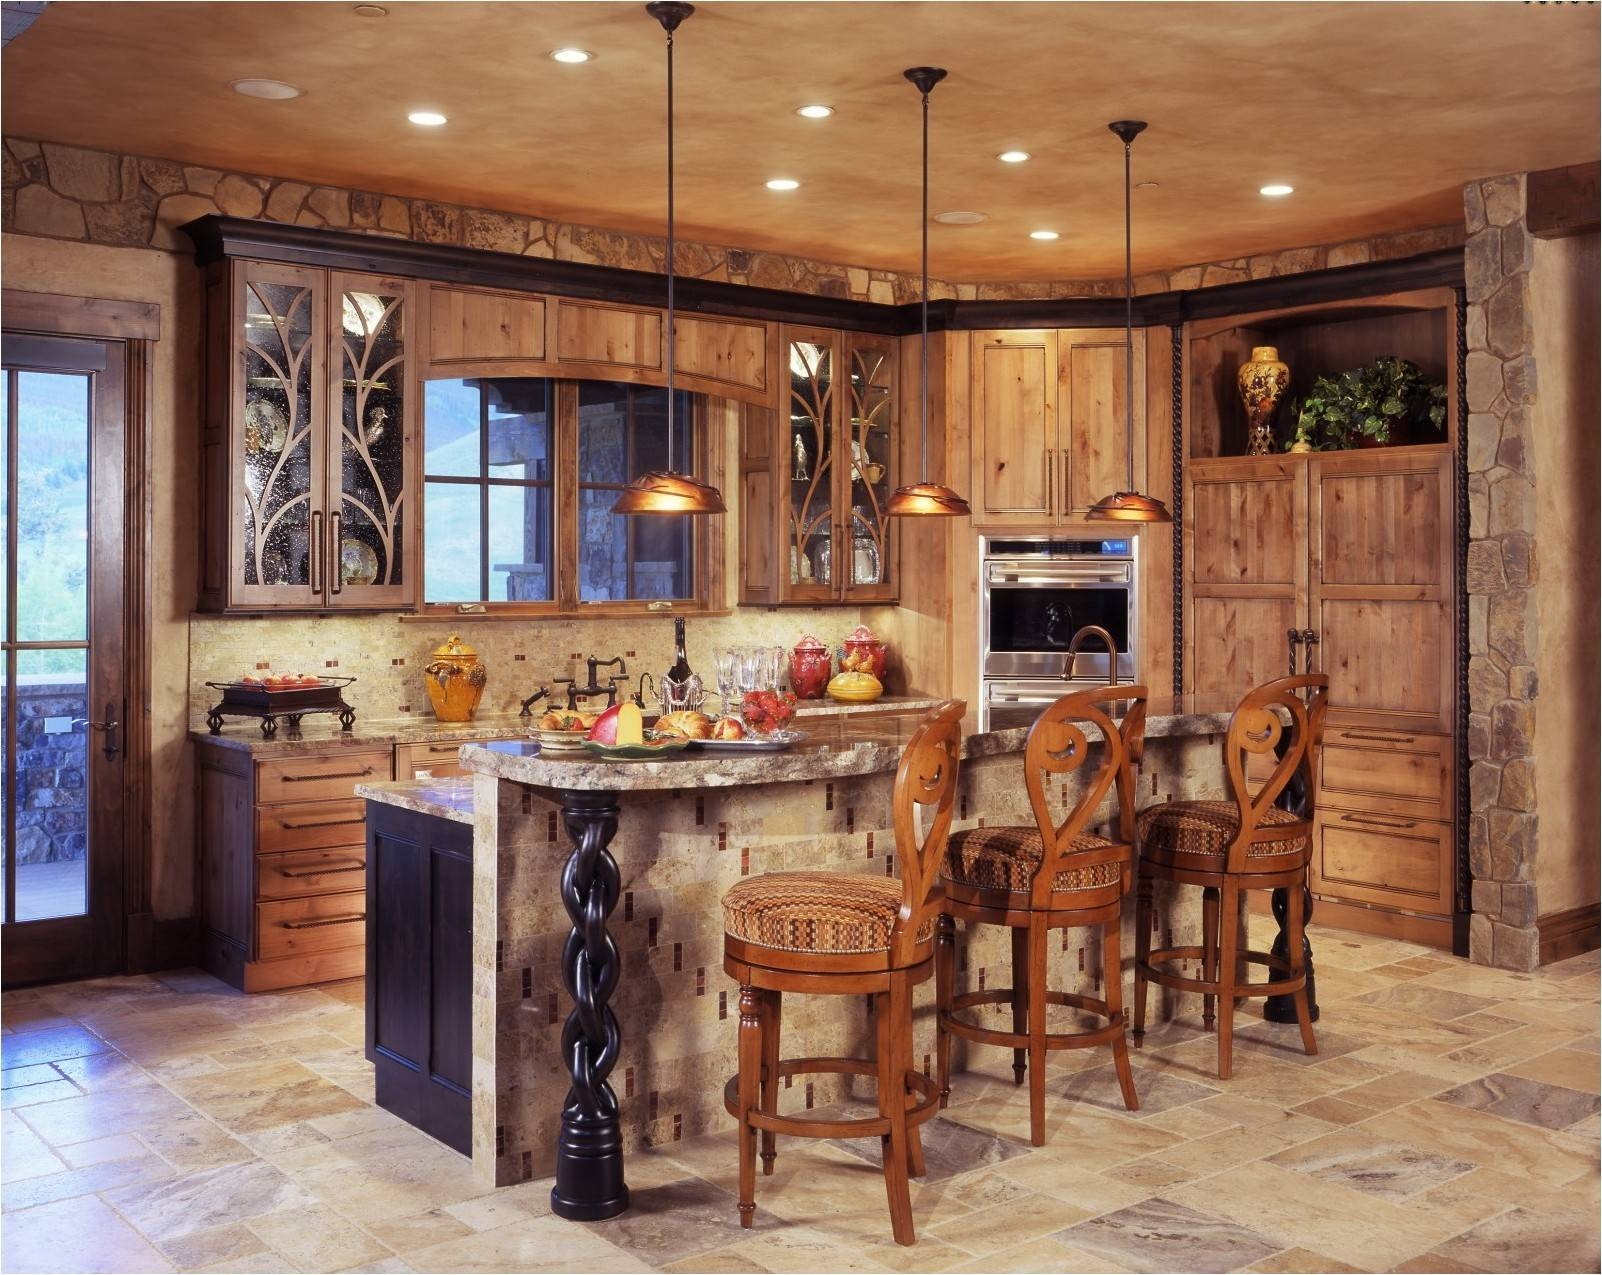 Kitchen Room : Nice Beautiful Mini Bar Rustic Pendant Lighting With Regard To Rustic Pendant Lighting For Kitchen (View 13 of 15)